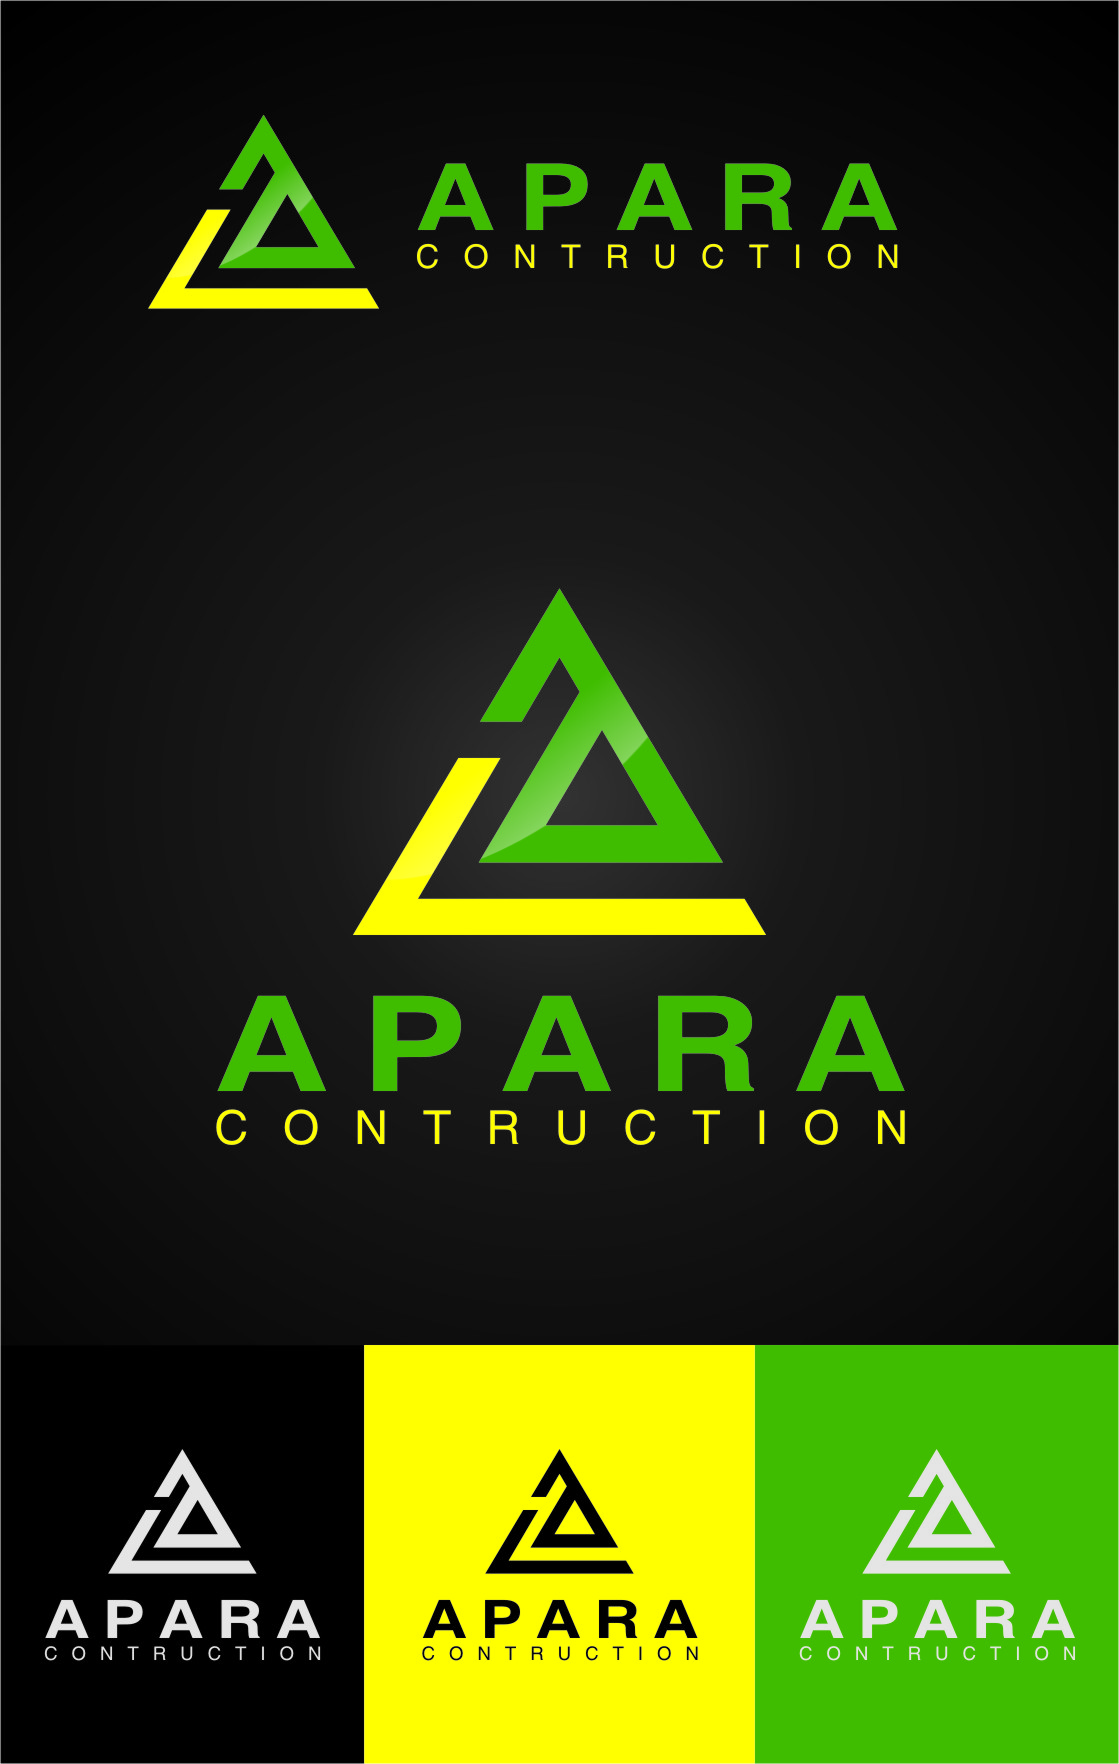 Logo Design by RasYa Muhammad Athaya - Entry No. 88 in the Logo Design Contest Apara Construction Logo Design.